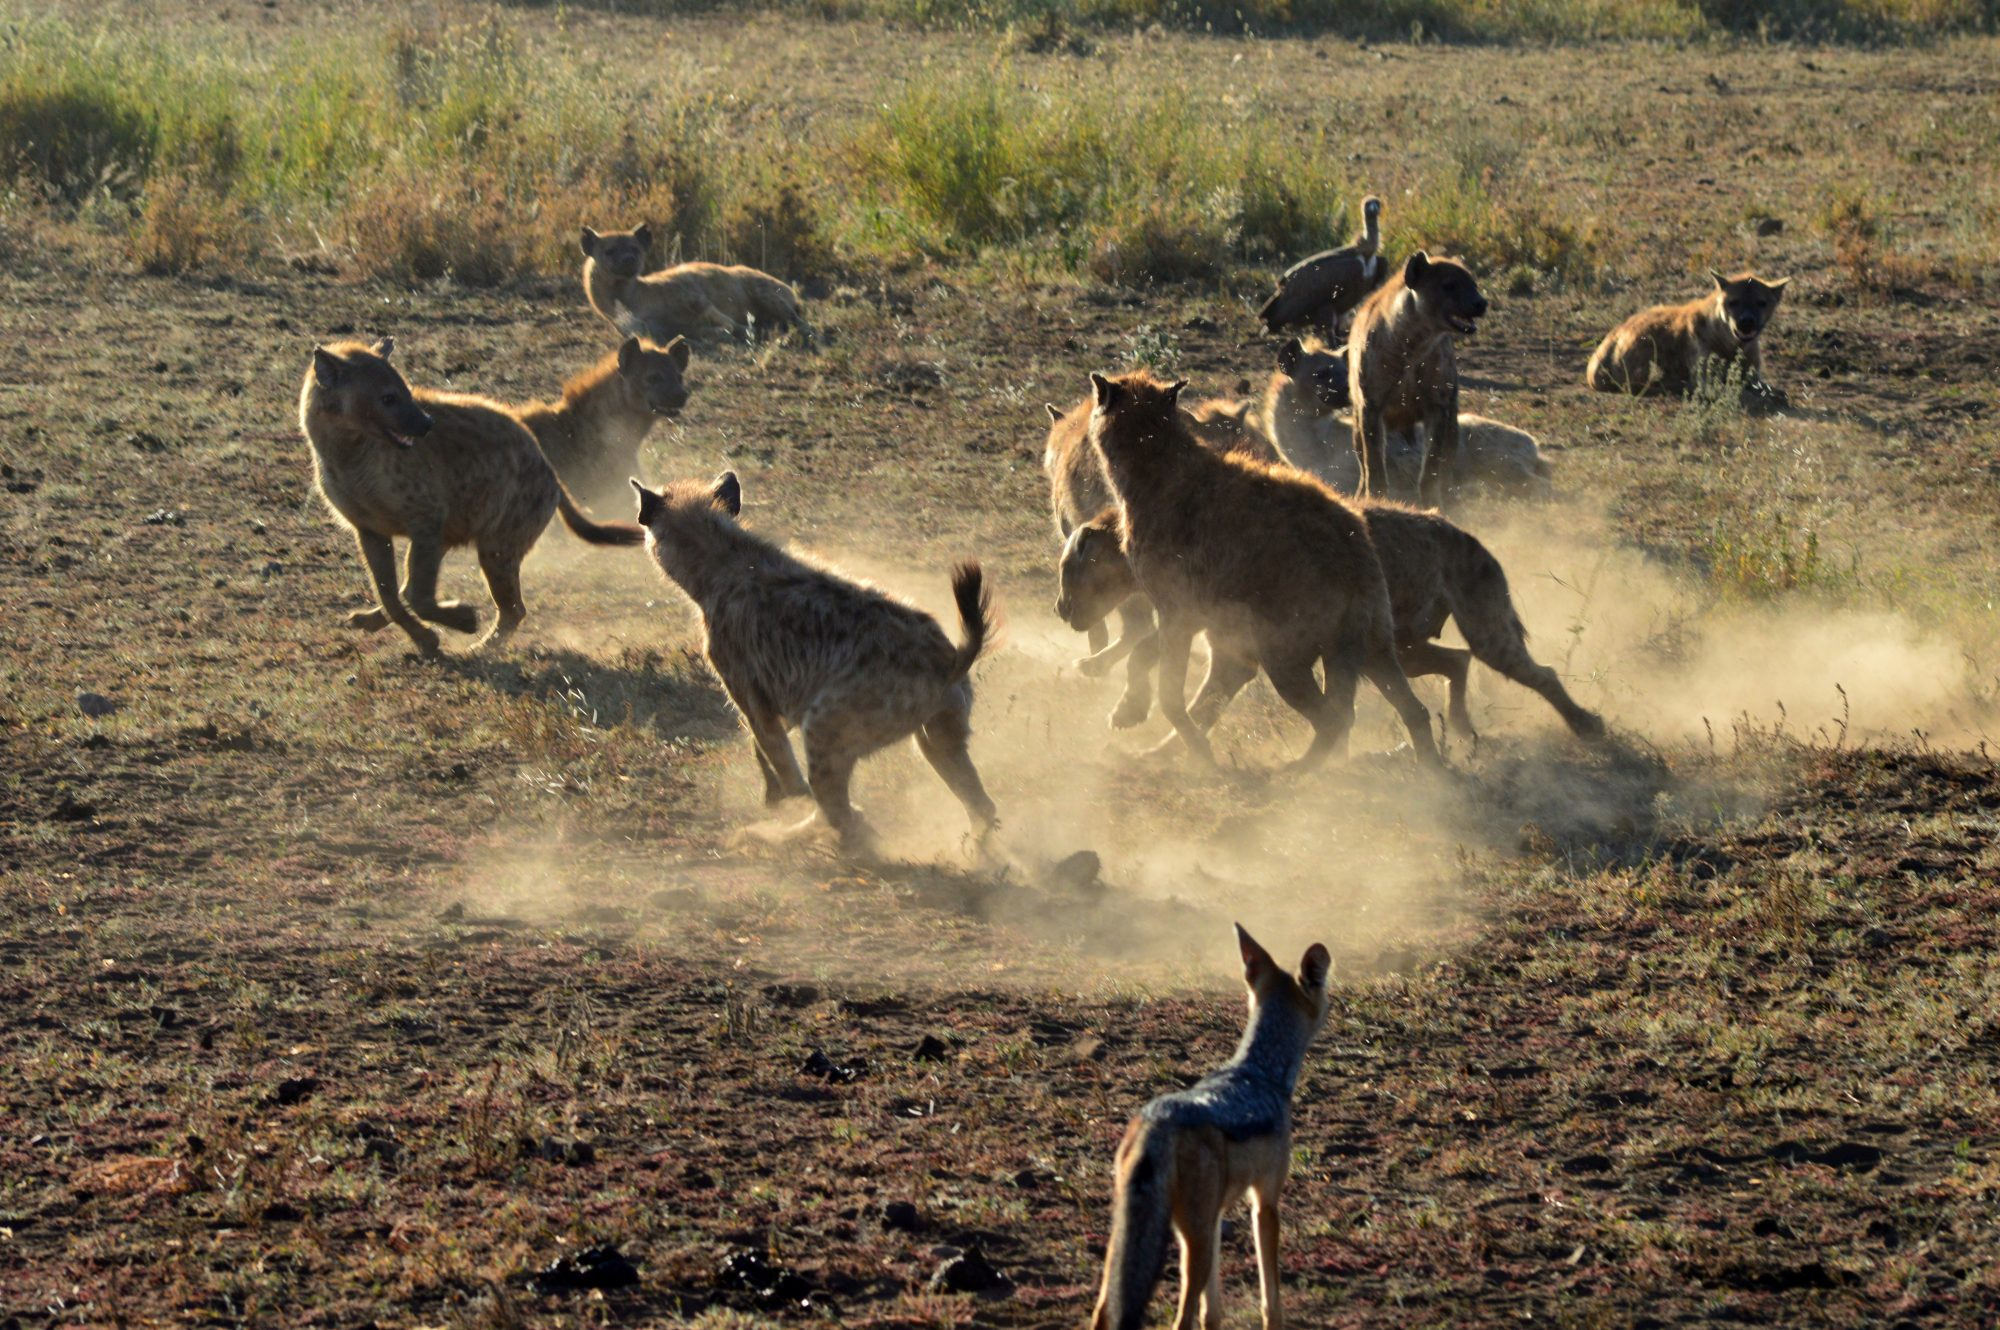 hyenas and jackal scavenging